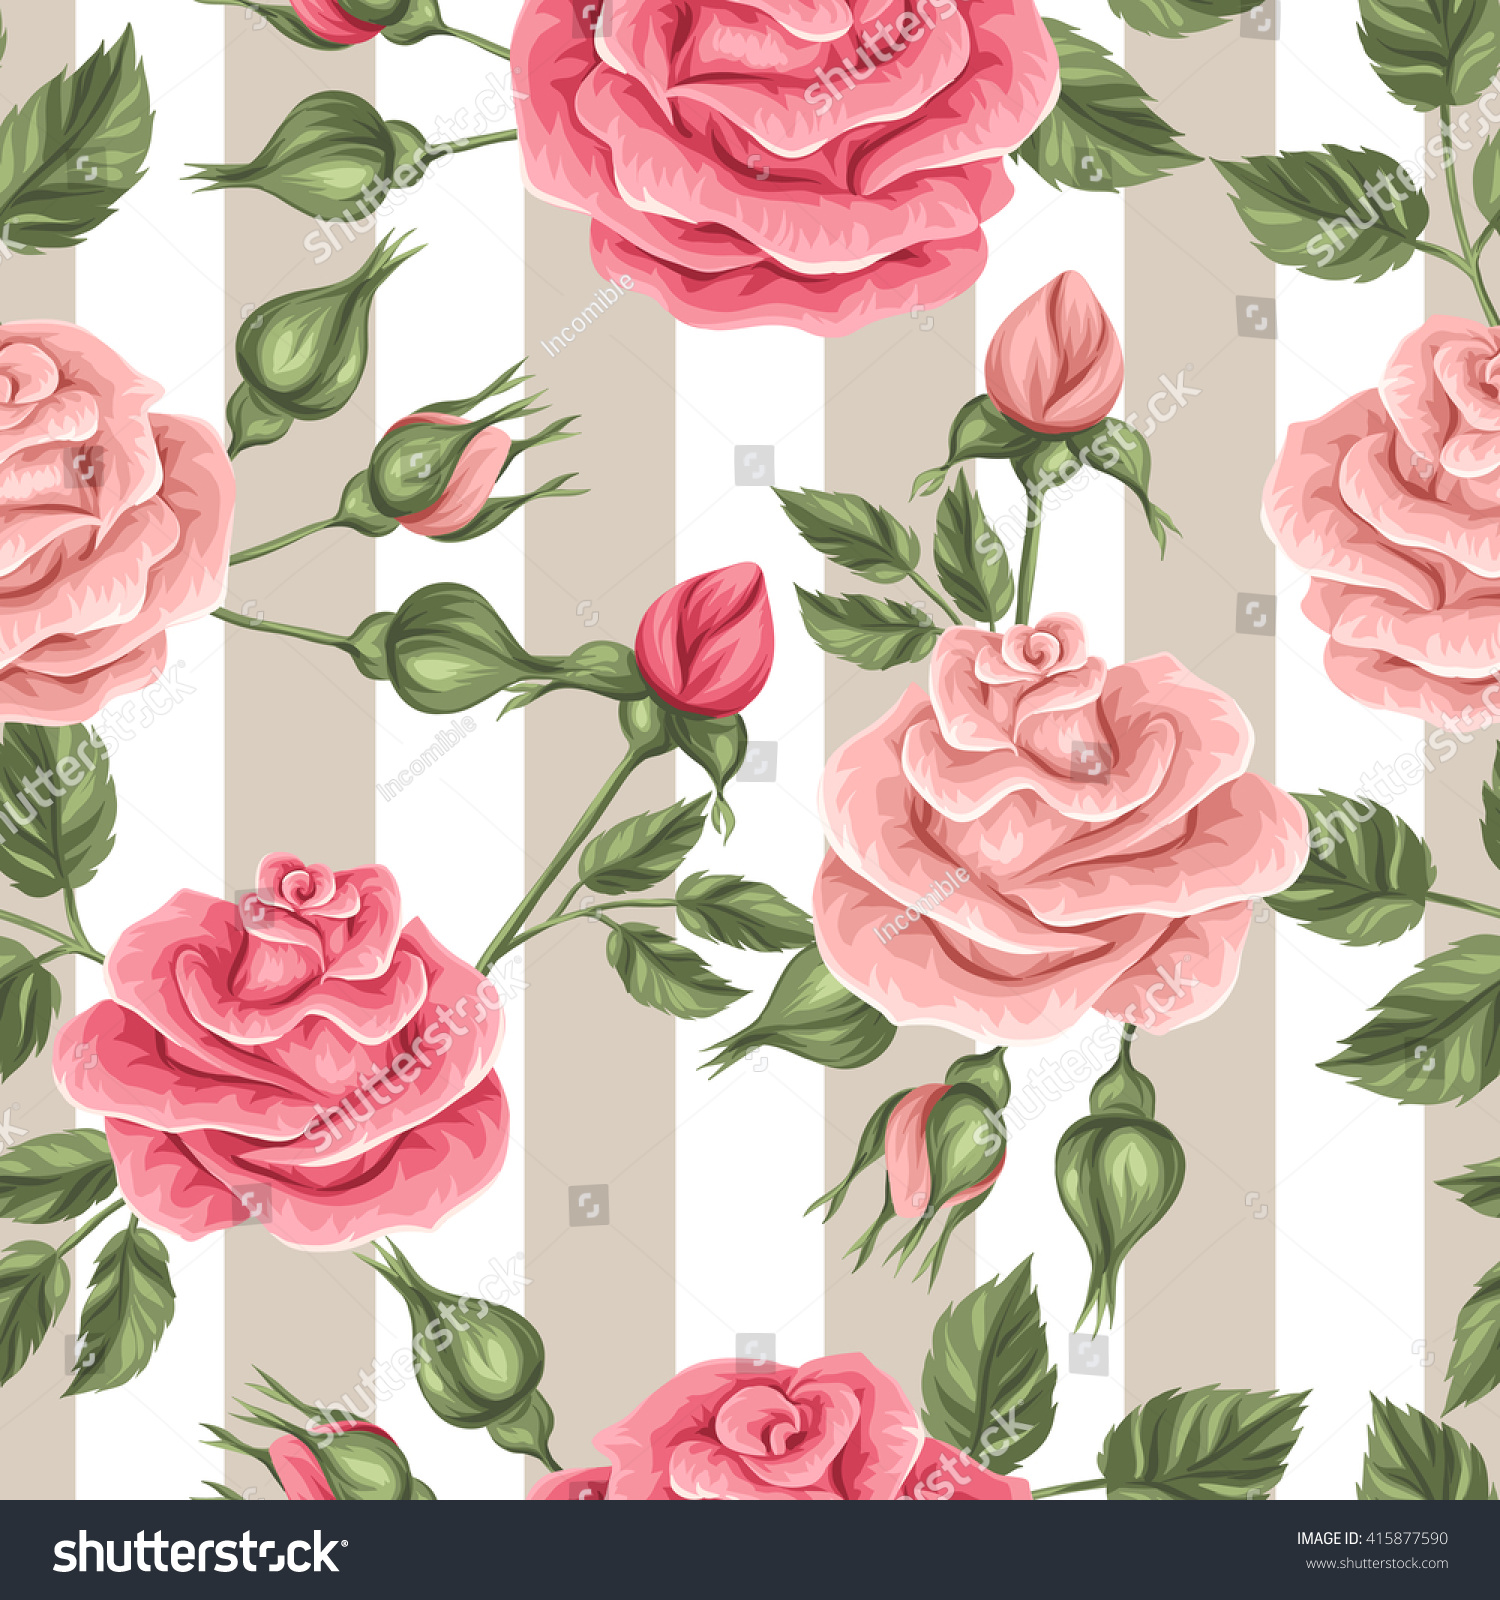 Seamless pattern vintage roses decorative retro stock vector seamless pattern with vintage roses decorative retro flowers easy to use for backdrop mightylinksfo